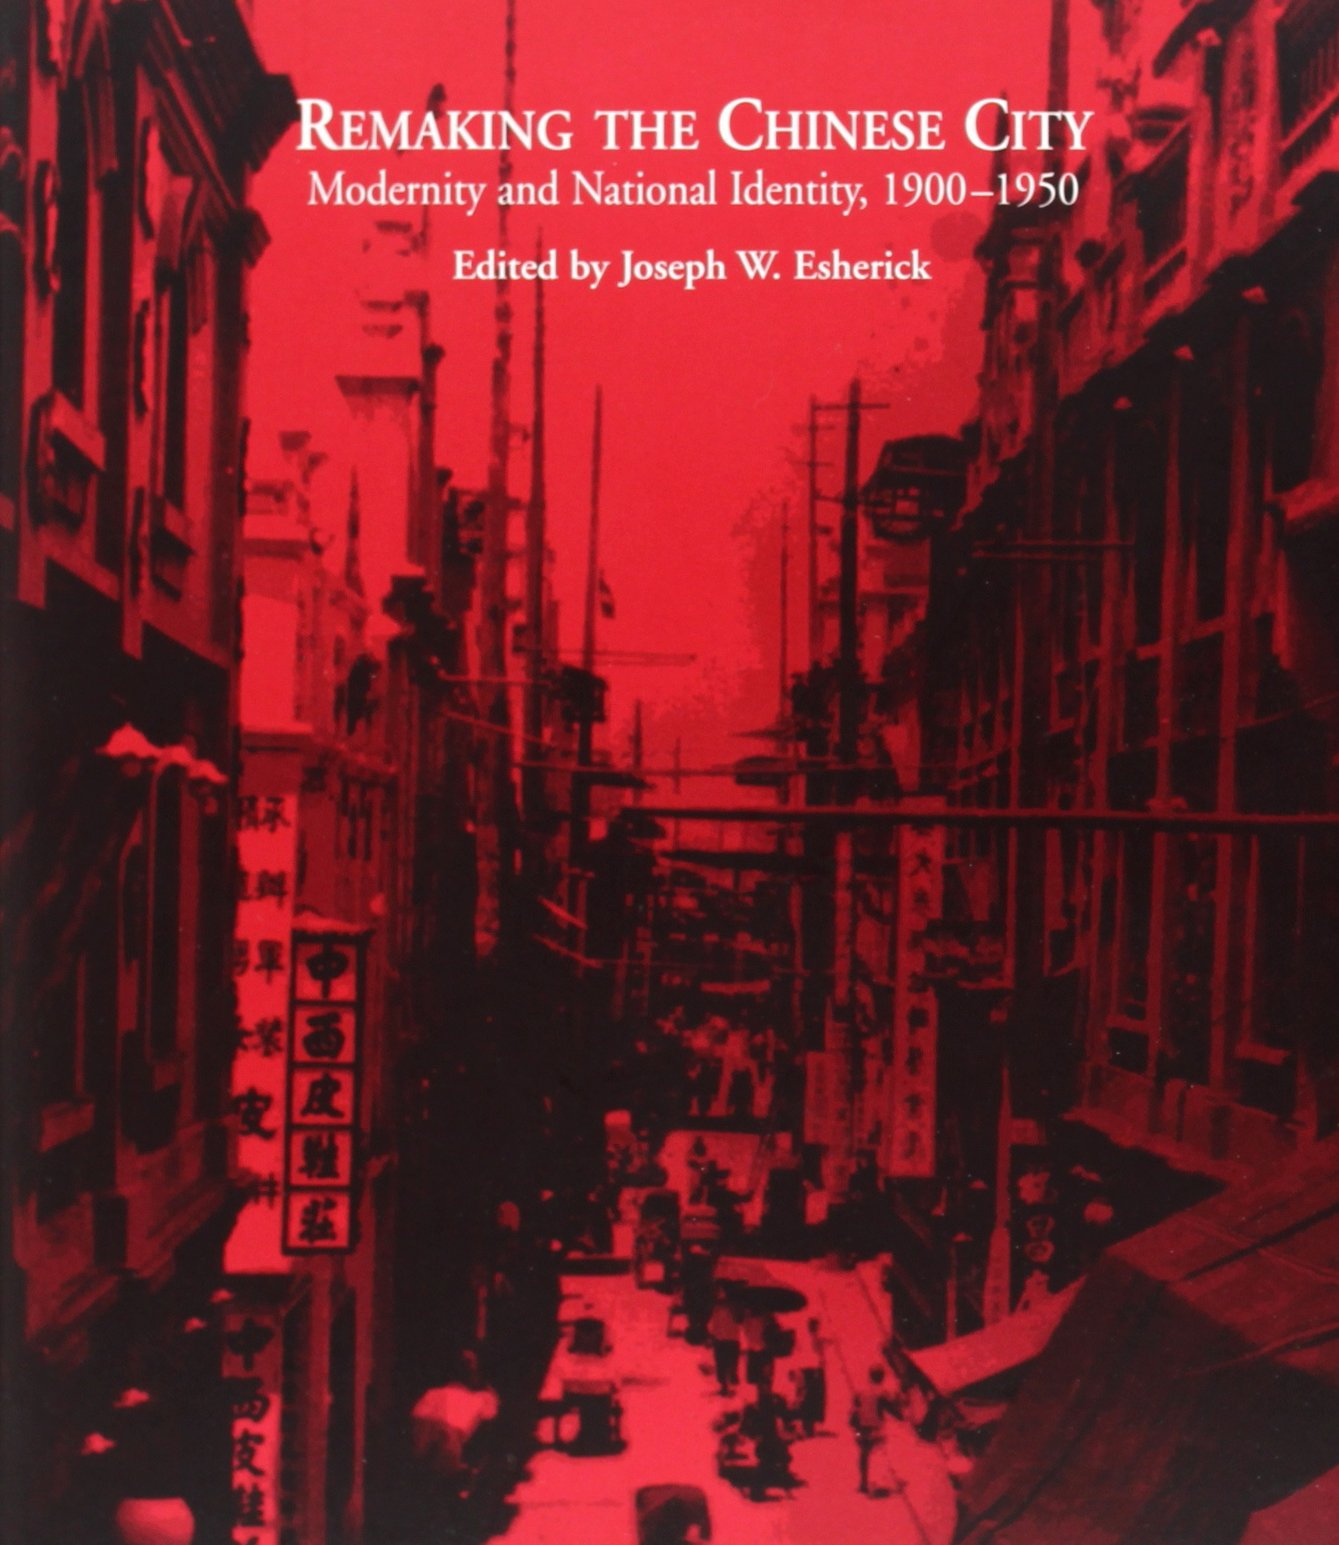 Download Remaking the Chinese City: Modernity and National Identity, 1900-1950 ebook